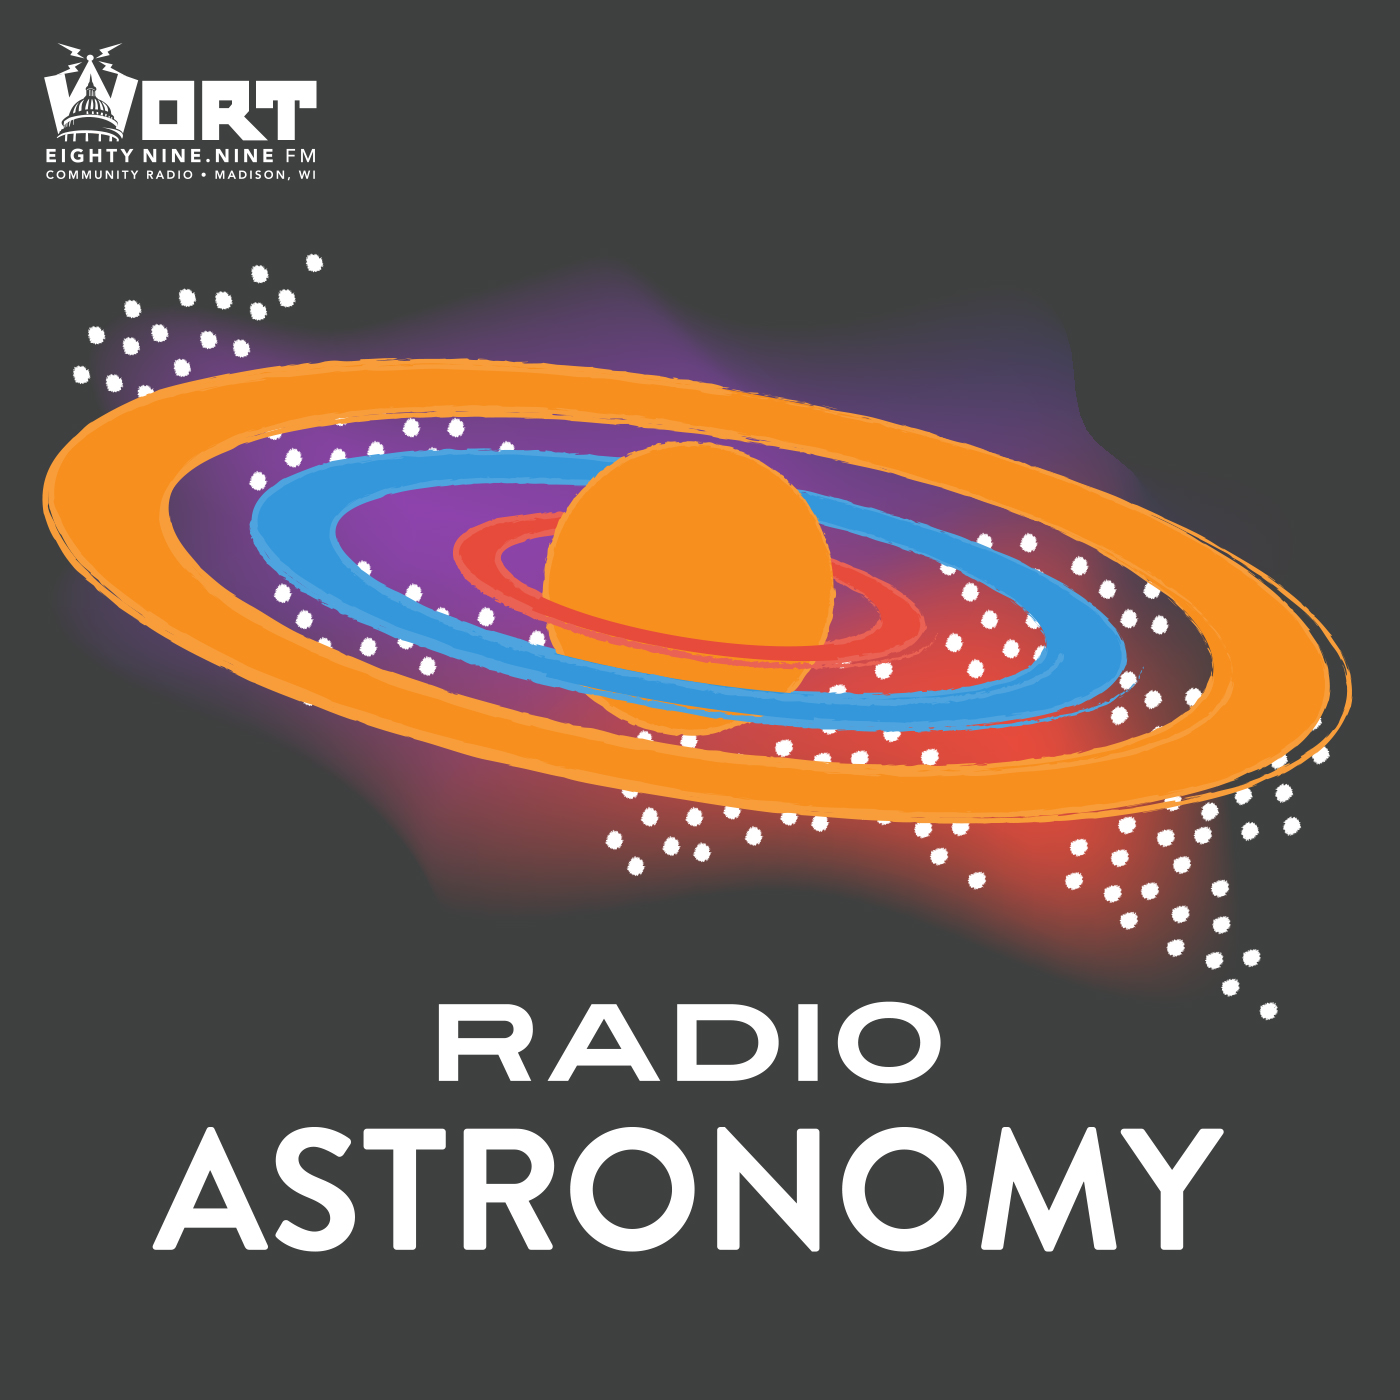 Radio Astronomy Neutron Star Surface Mapping Wort 89 9 Fm